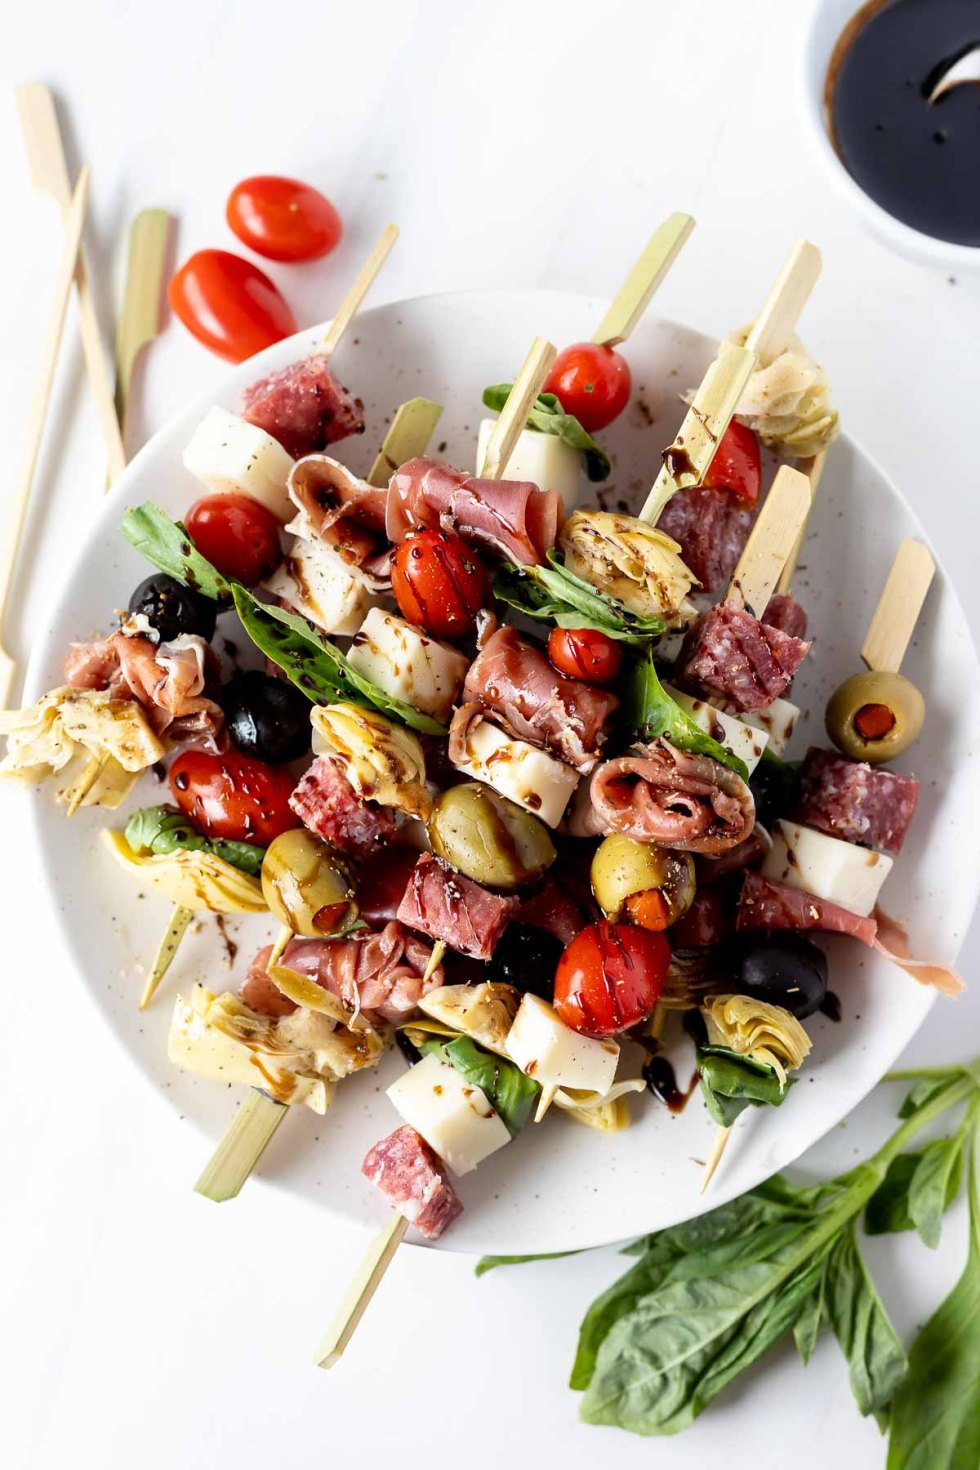 balsamic drizzled antipasto appetizer skewers on white plate